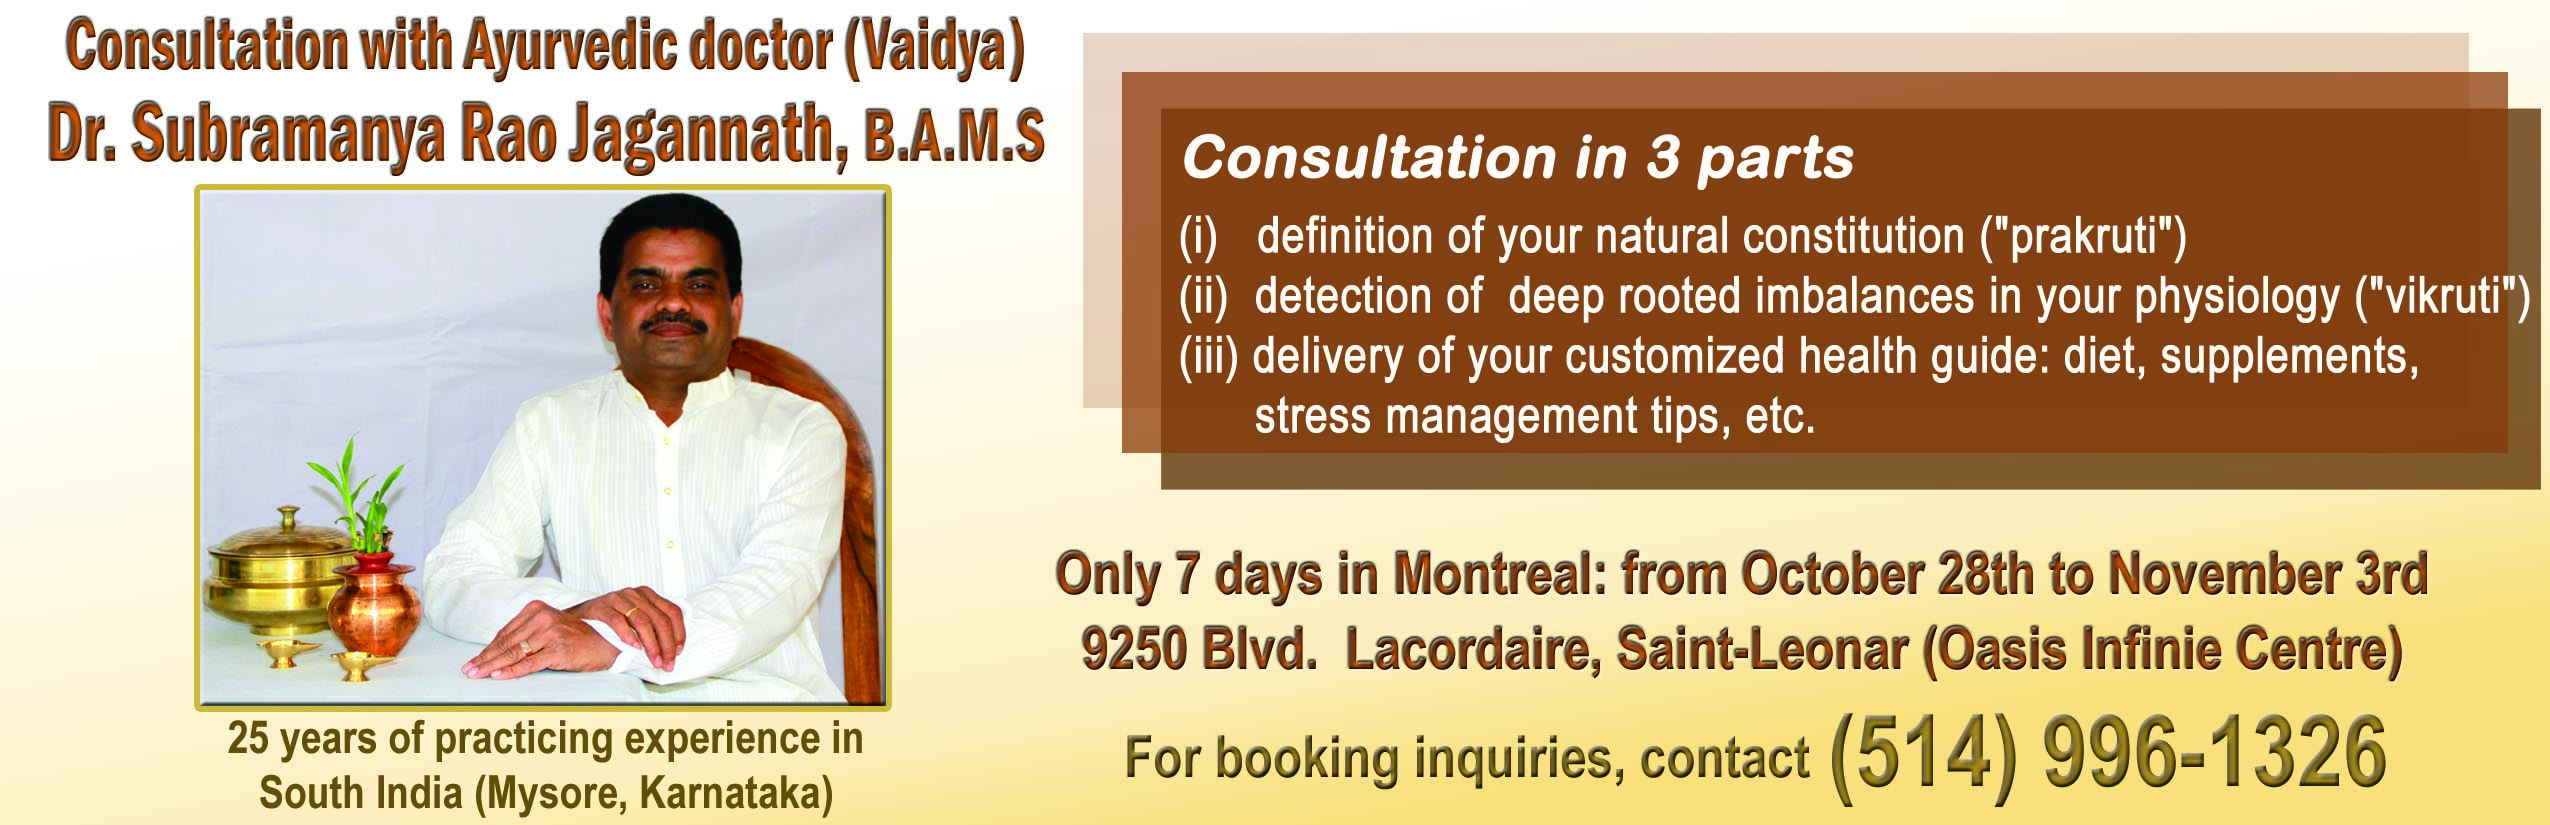 Consultation with Ayurvedic Doctor Subramanya Rao Jagannath in Montreal from Oct. 28th to Nov. 3rd